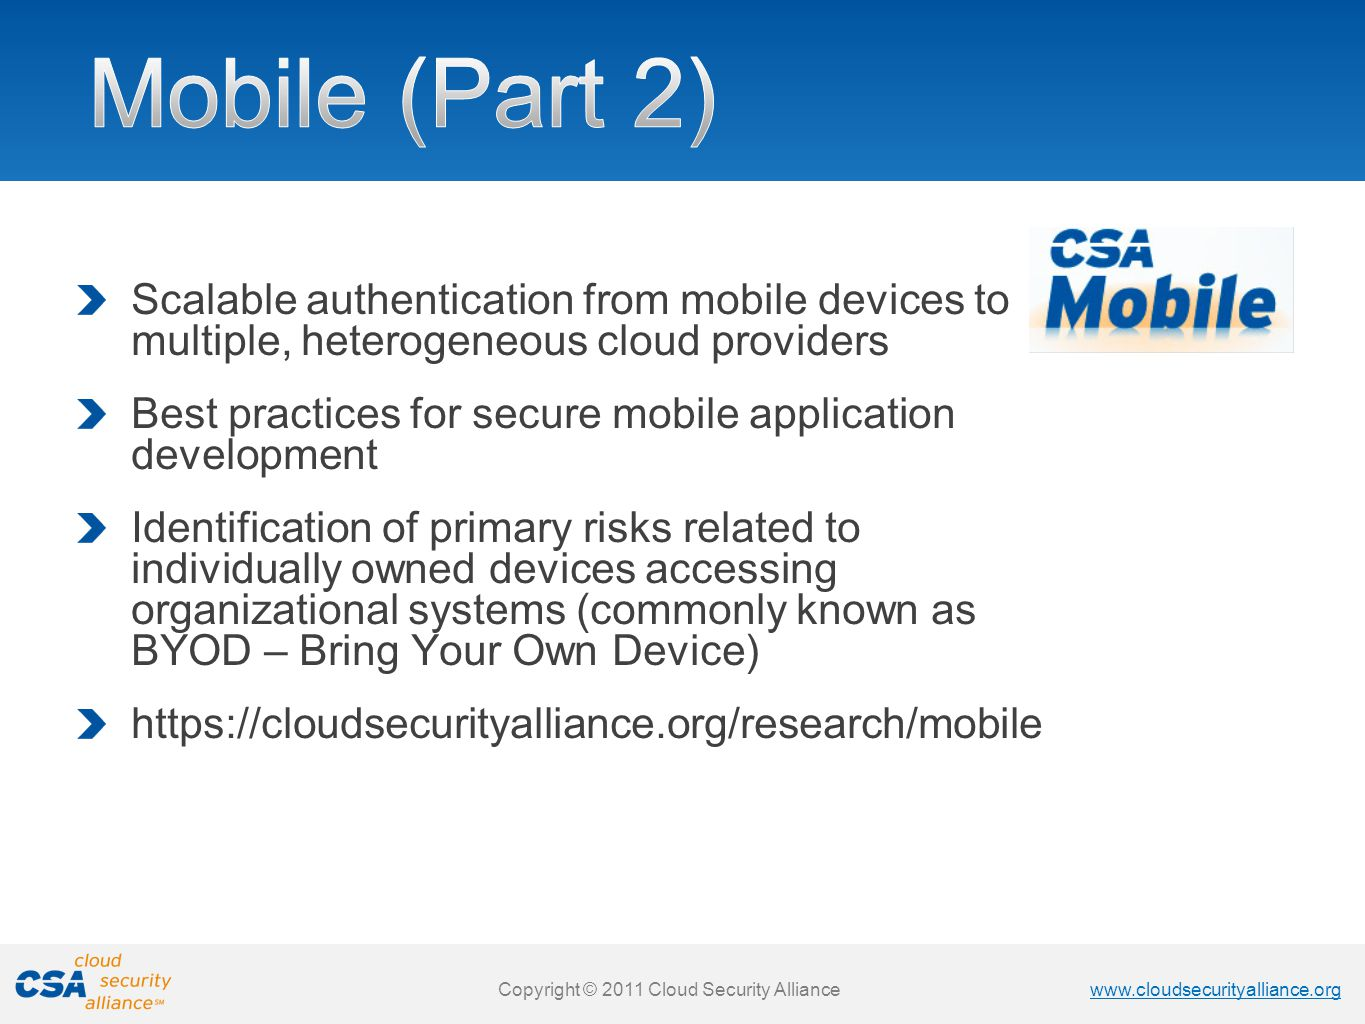 Mobile (Part 2) Scalable authentication from mobile devices to multiple, heterogeneous cloud providers.